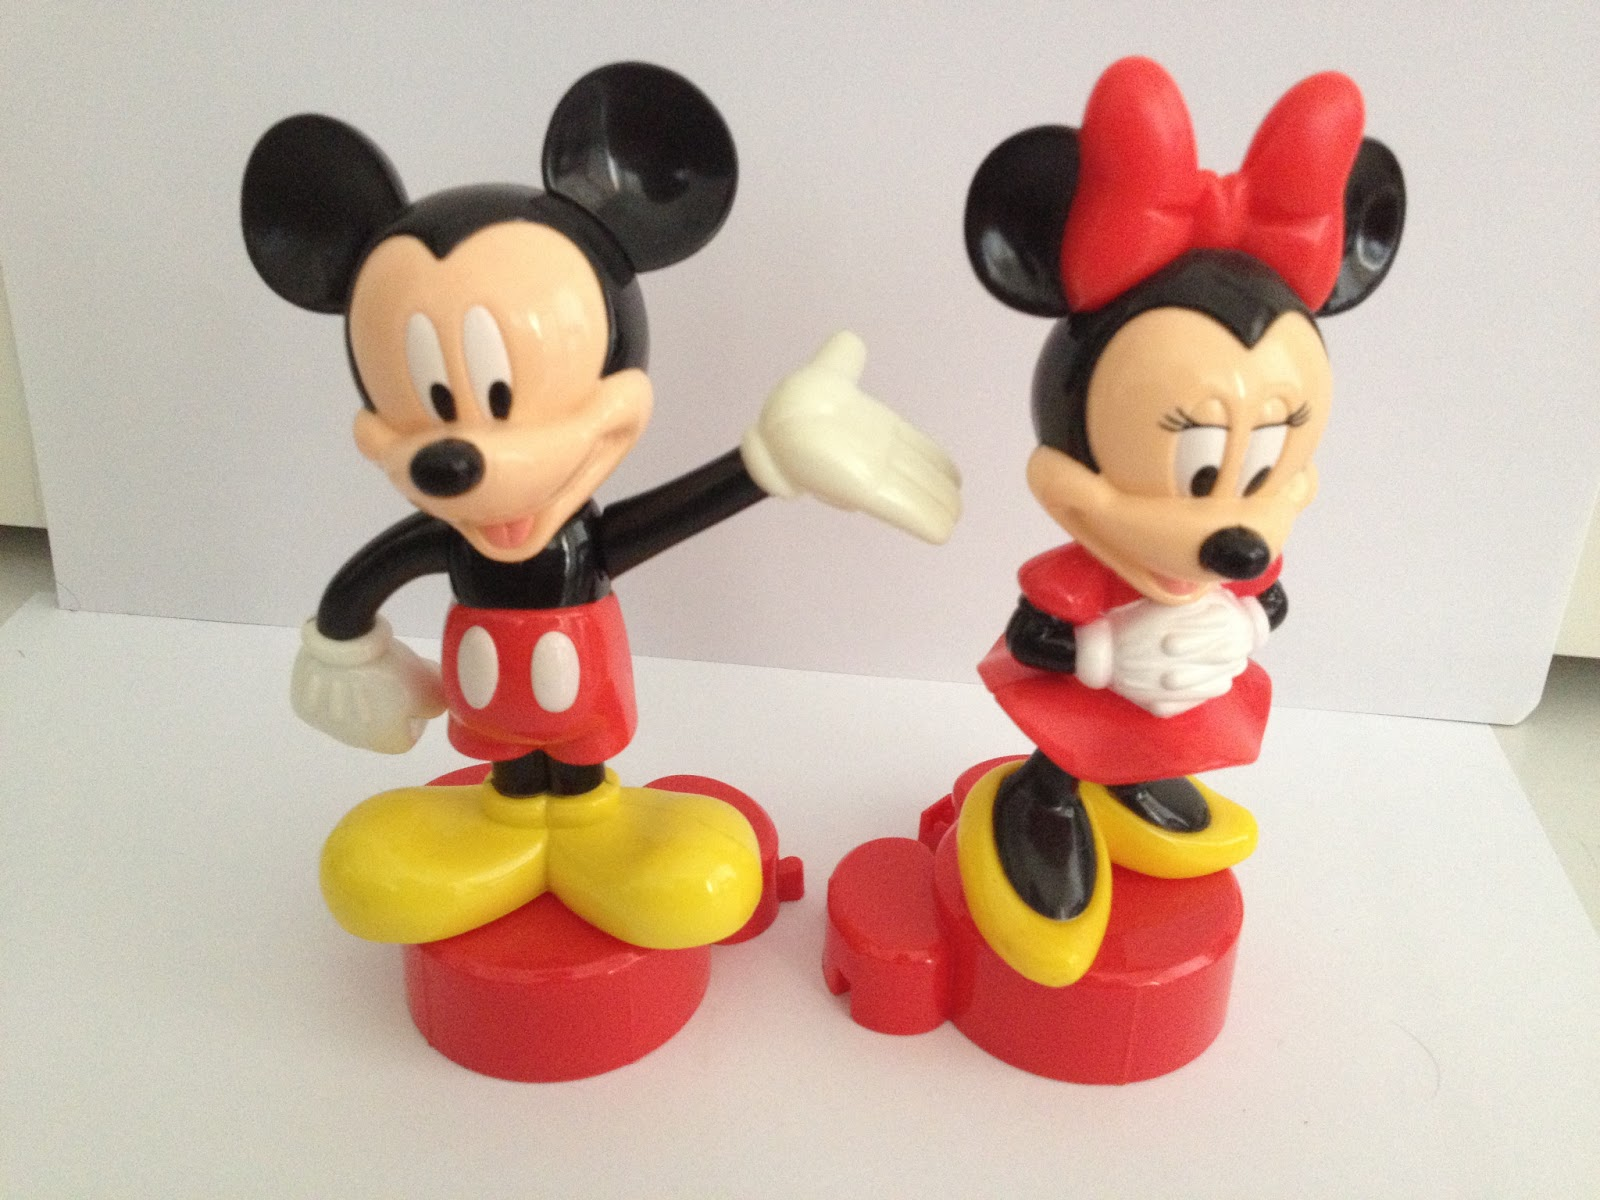 Mickey Mouse Toys : Niwde hobbies collection mcdonald s toys mickey mouse